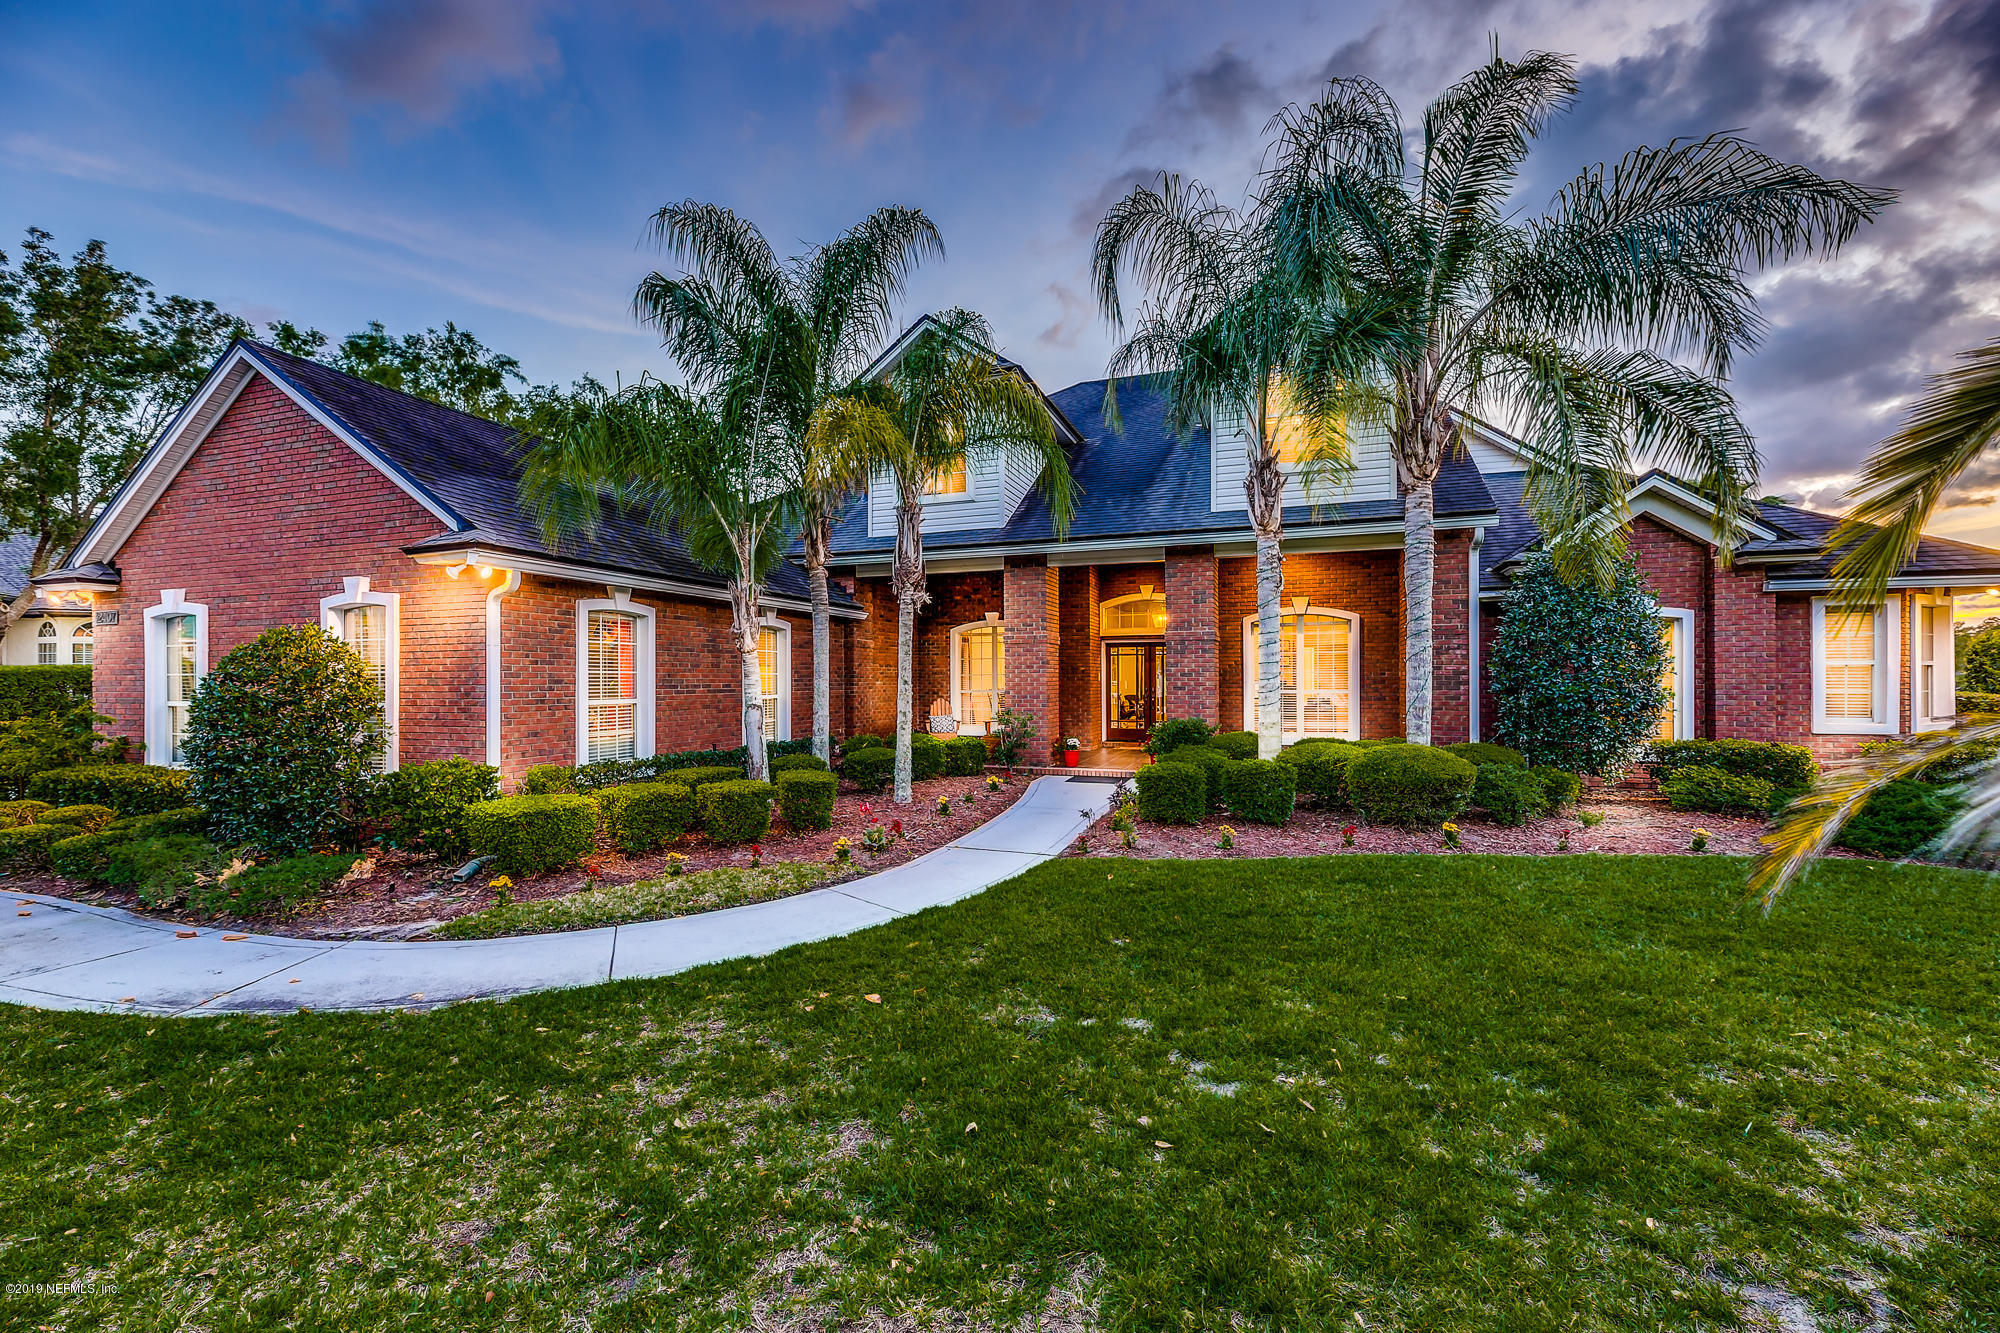 12407 GLENSHEE, JACKSONVILLE, FLORIDA 32224, 5 Bedrooms Bedrooms, ,5 BathroomsBathrooms,Residential - single family,For sale,GLENSHEE,993924